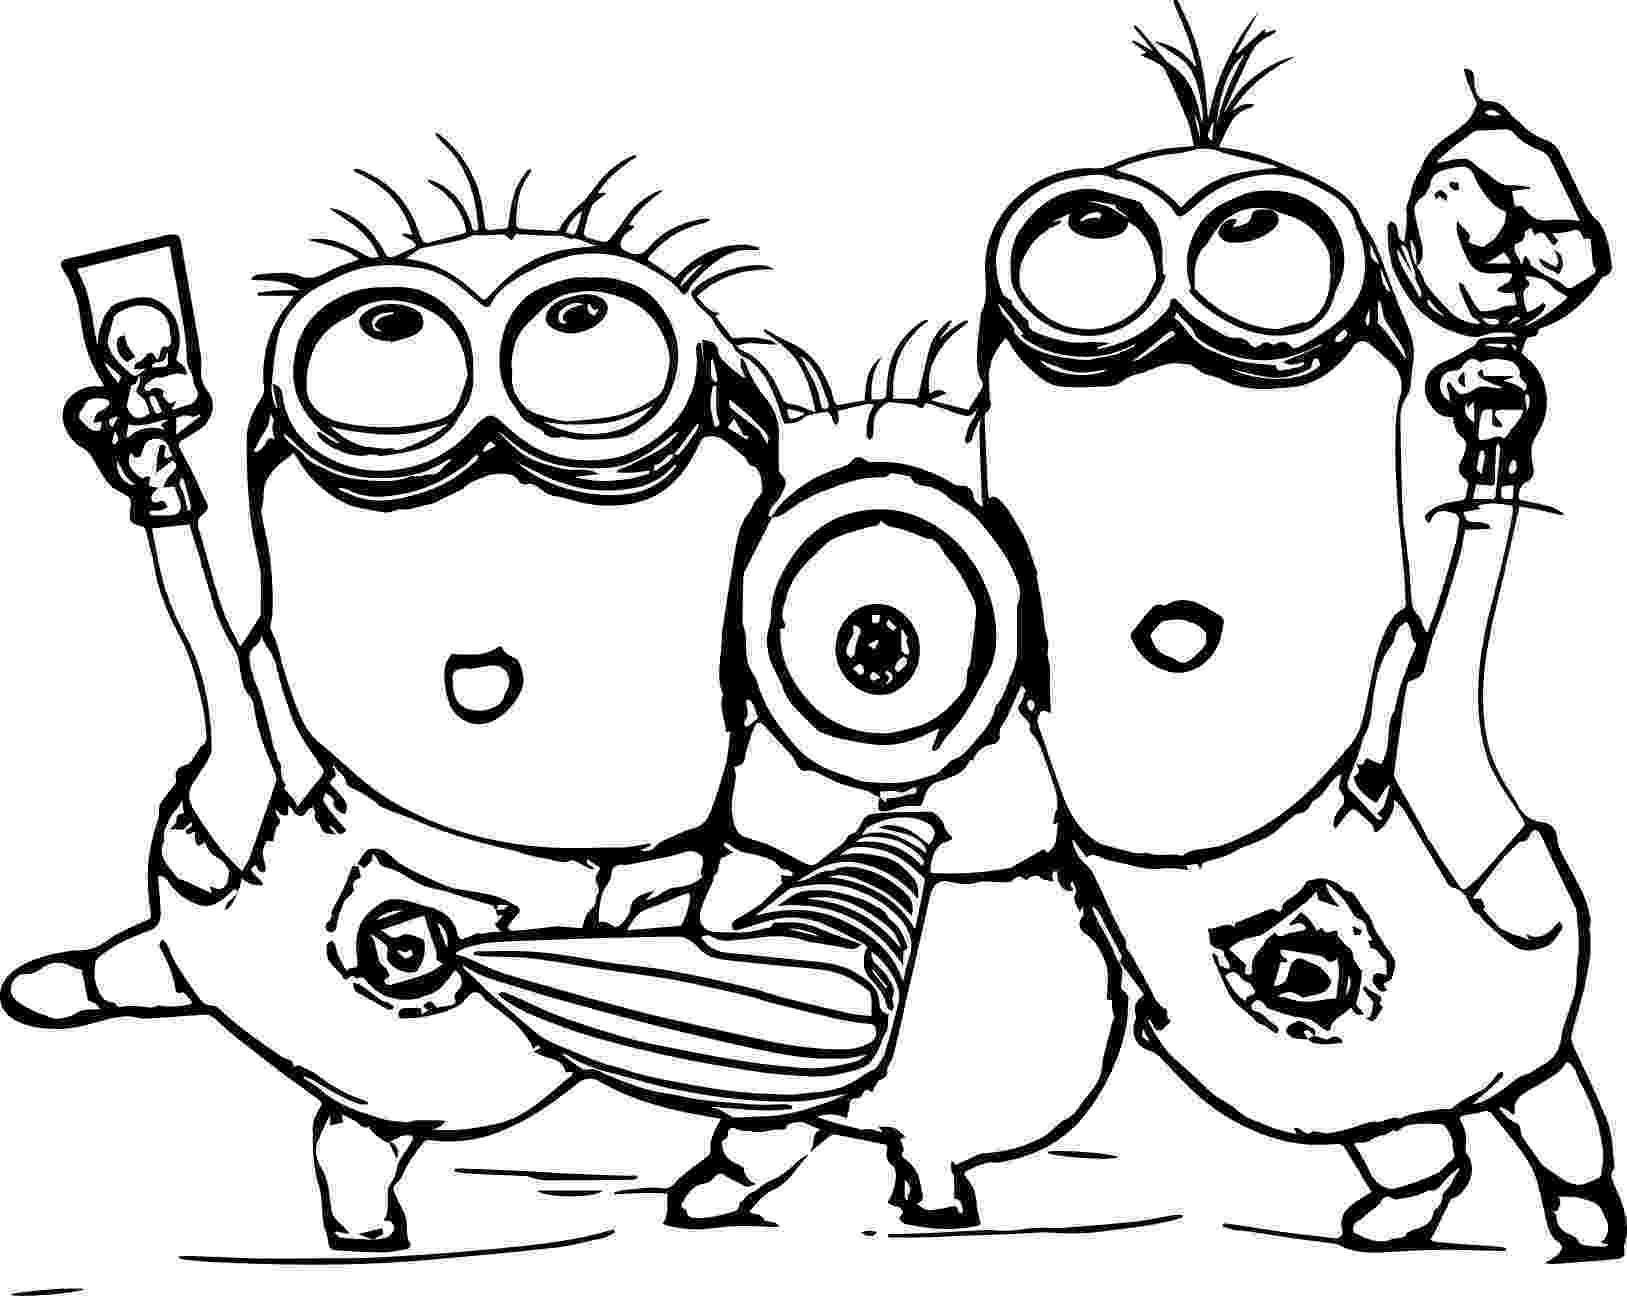 coloring pages online minions minion coloring pages best coloring pages for kids online pages coloring minions